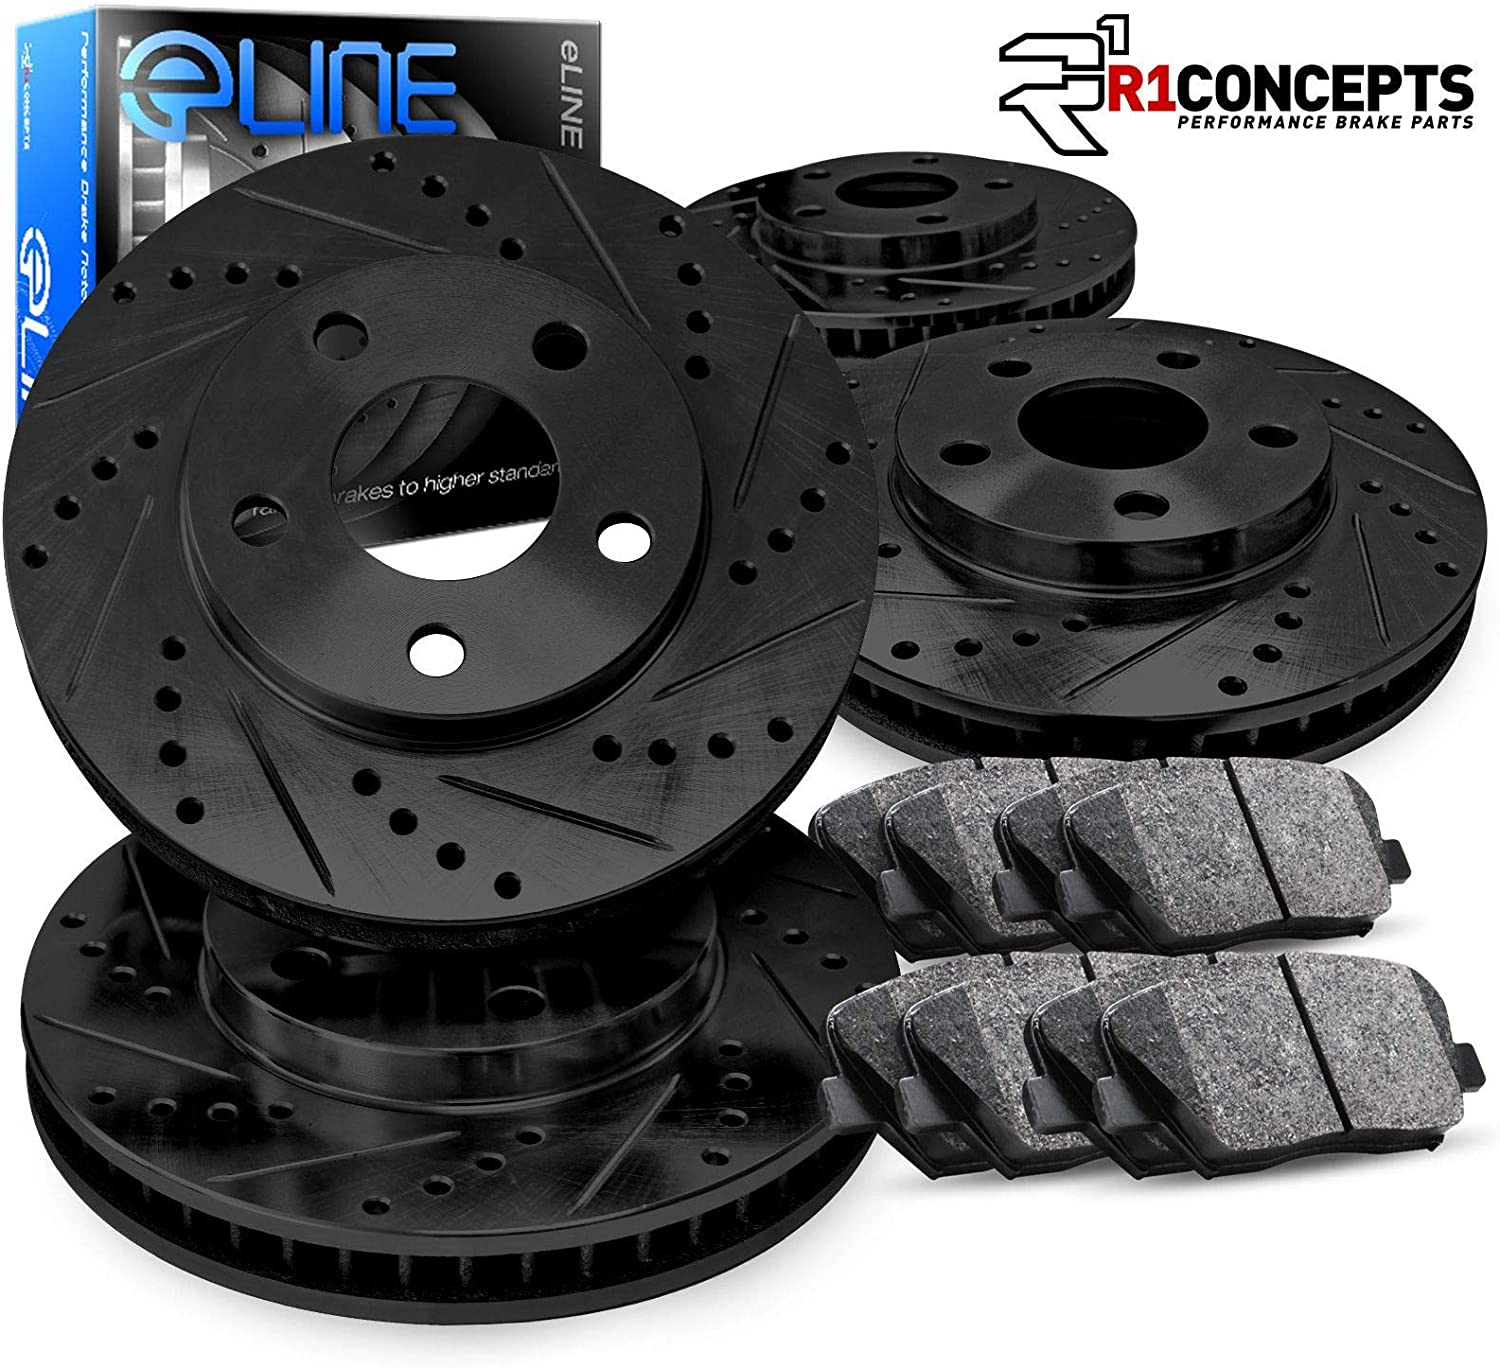 DRILLED SLOTTED BRAKE ROTORS /& CERAMIC BRAKE PADS A272 FULL KIT BLACK ELINE